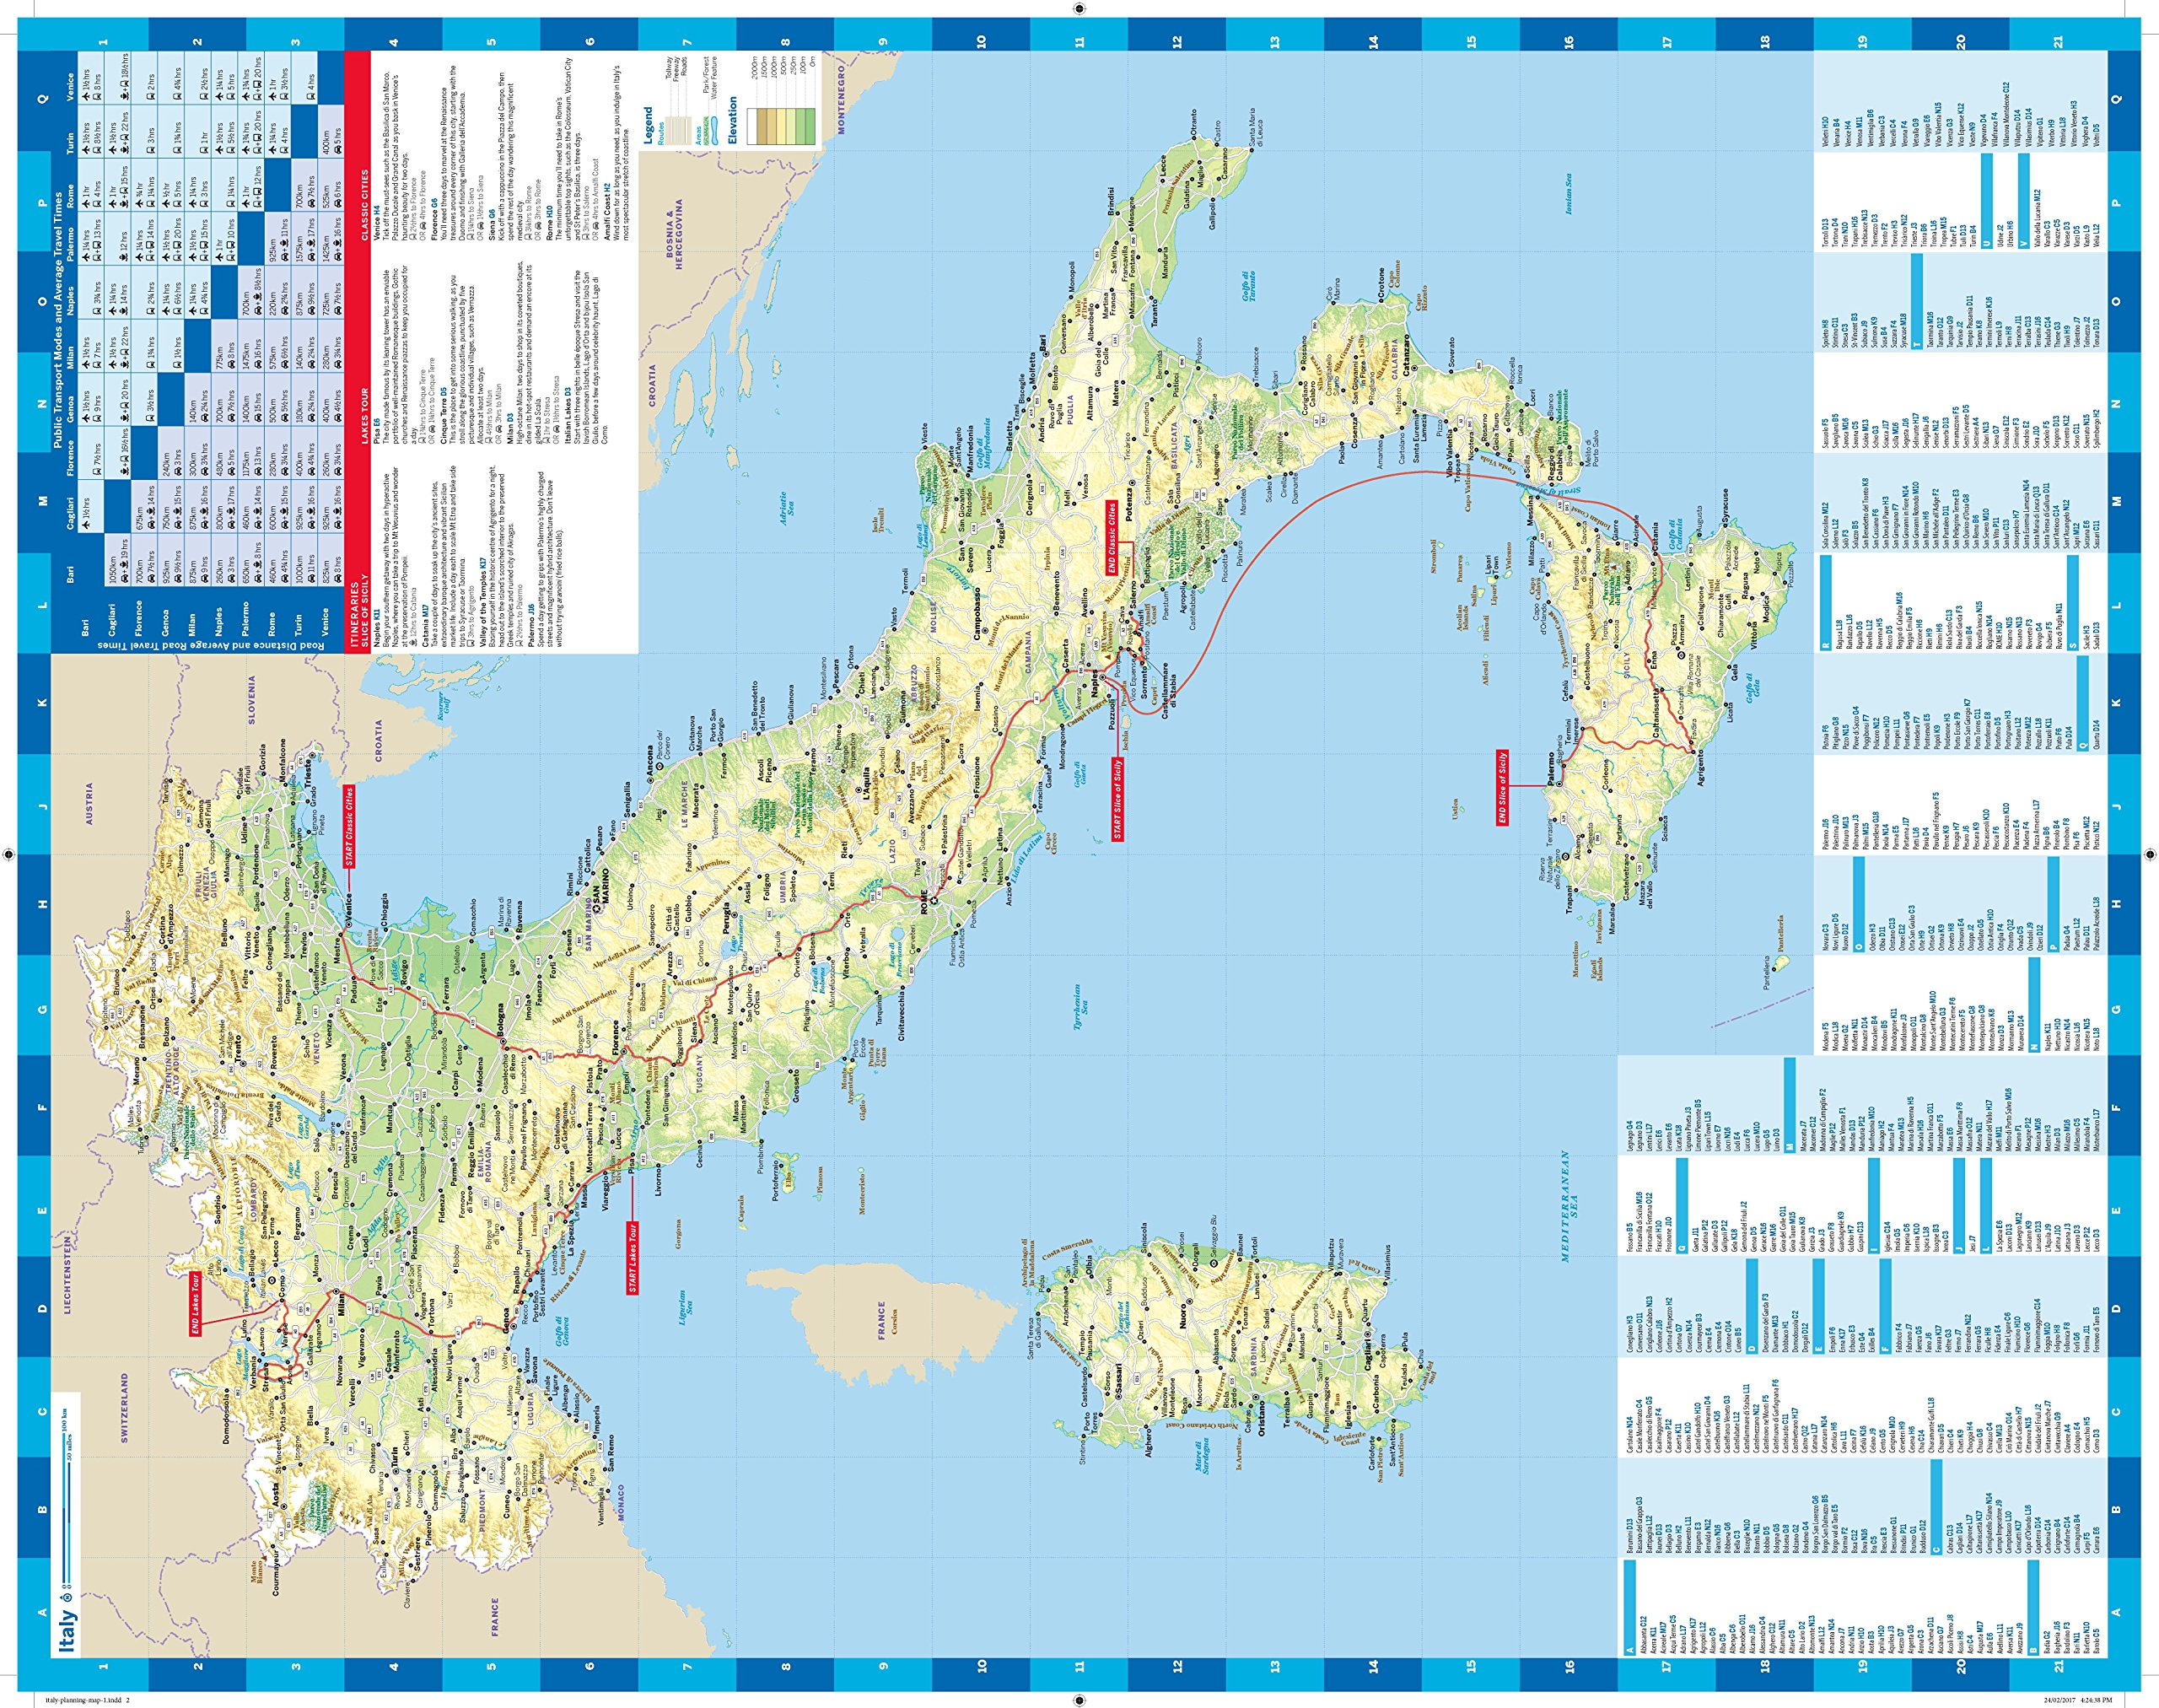 Lonely Planet Italy Planning Map Lonely Planet - Italy map